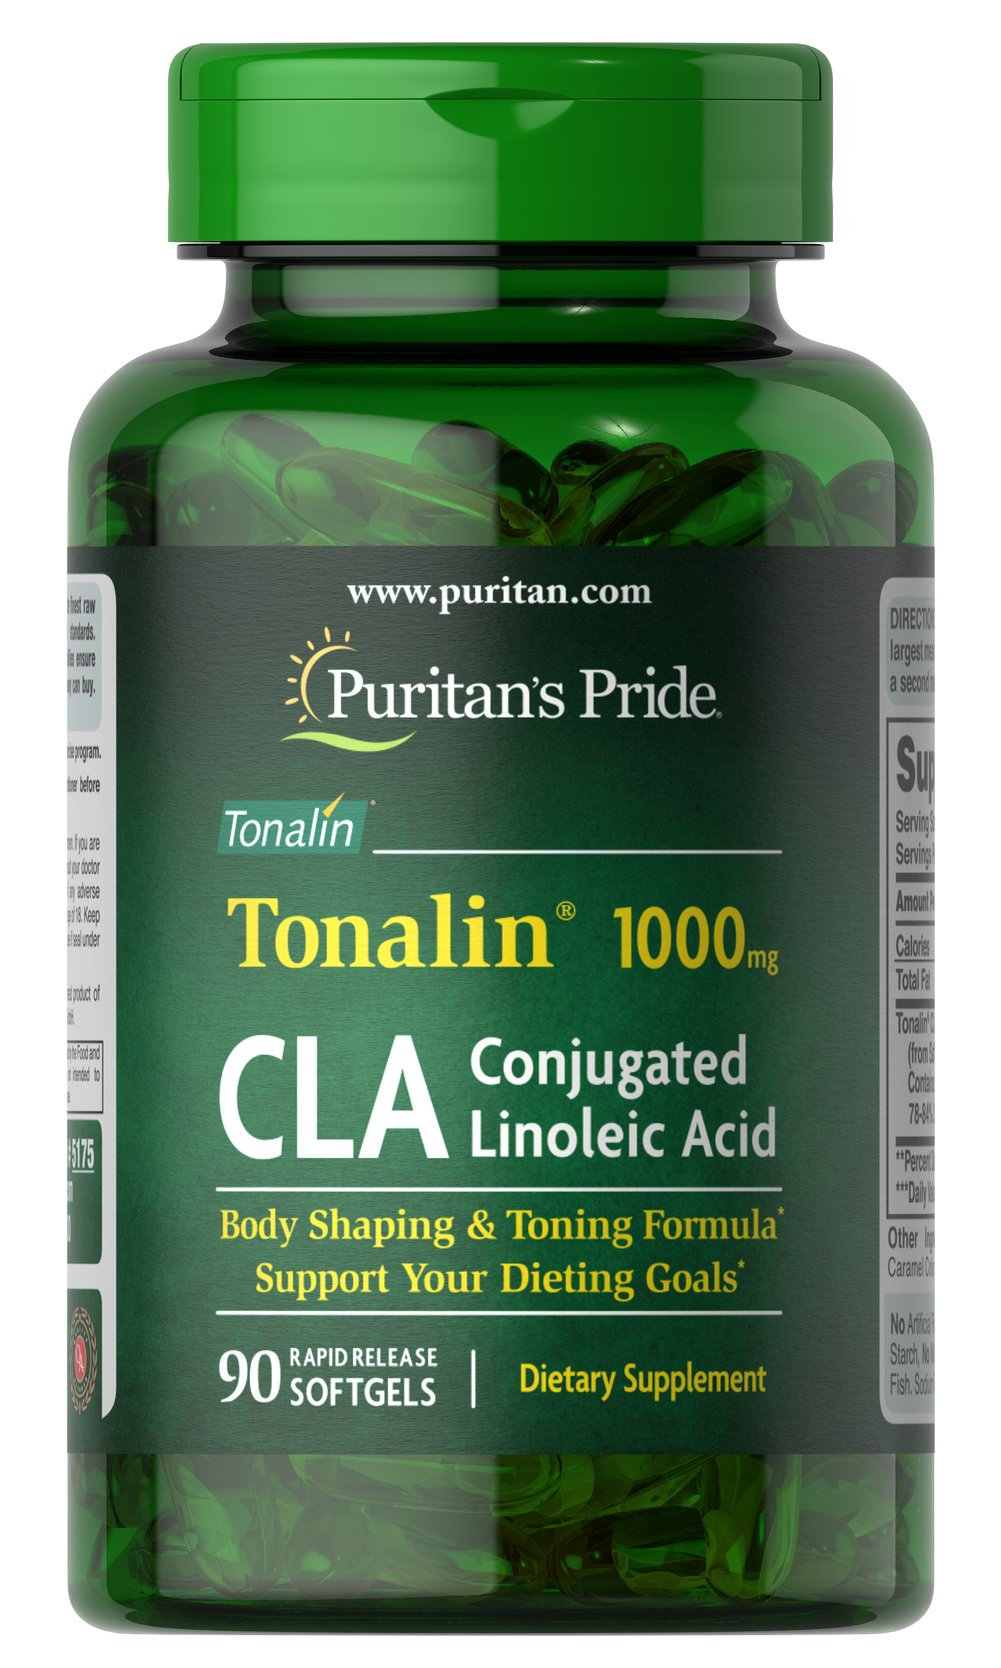 CLA 1000 mg Tonalin® <p>CLA (Conjugated Linoleic Acid) supports a healthy body composition**</p><p>Derived from Safflower Oil, CLA supports your dieting goals**</p><p>Rapid Release softgels are formulated for quick release into your system</p><p>Use with a reduced calorie diet and daily exercise program</p> 90 Softgels 1000 mg $29.99